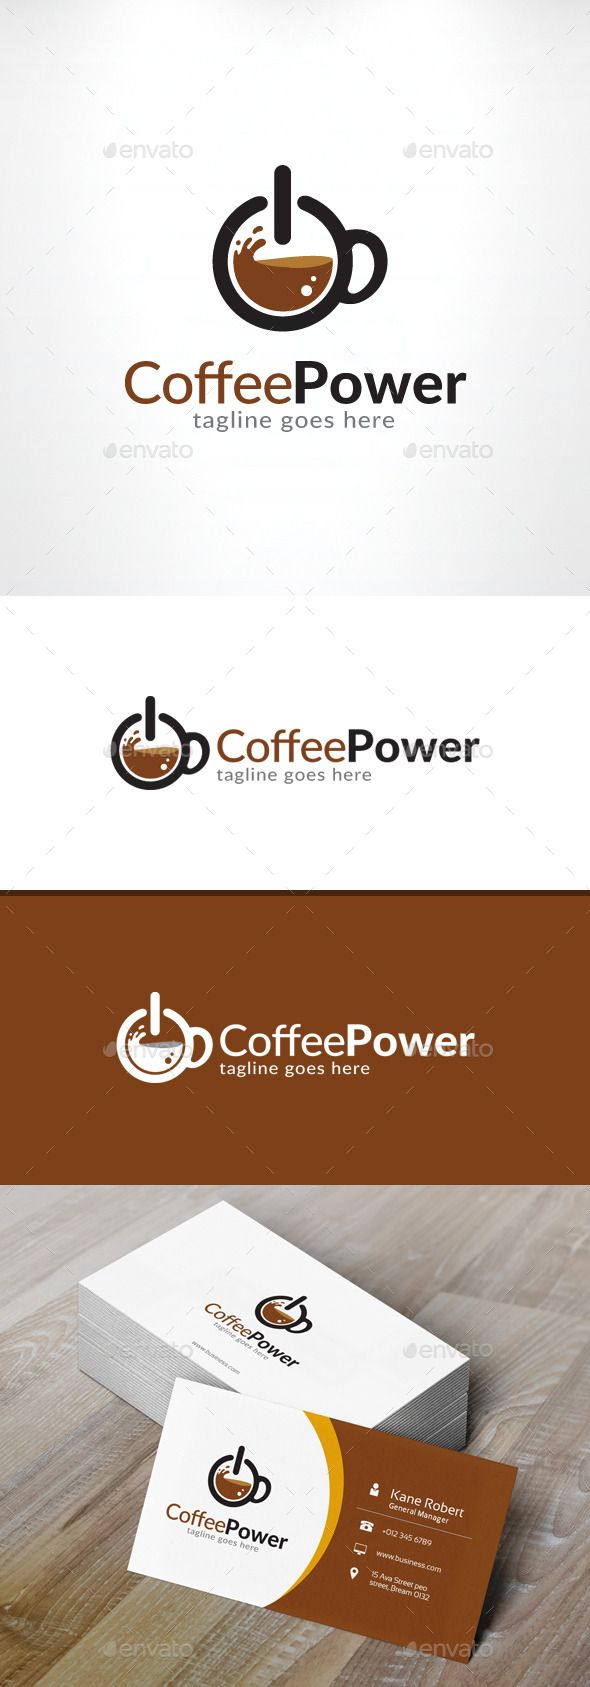 Coffee Power Logo  EPS Template • Download ↓ https://graphicriver.net/item/coffee-power-logo/12388530?ref=pxcr